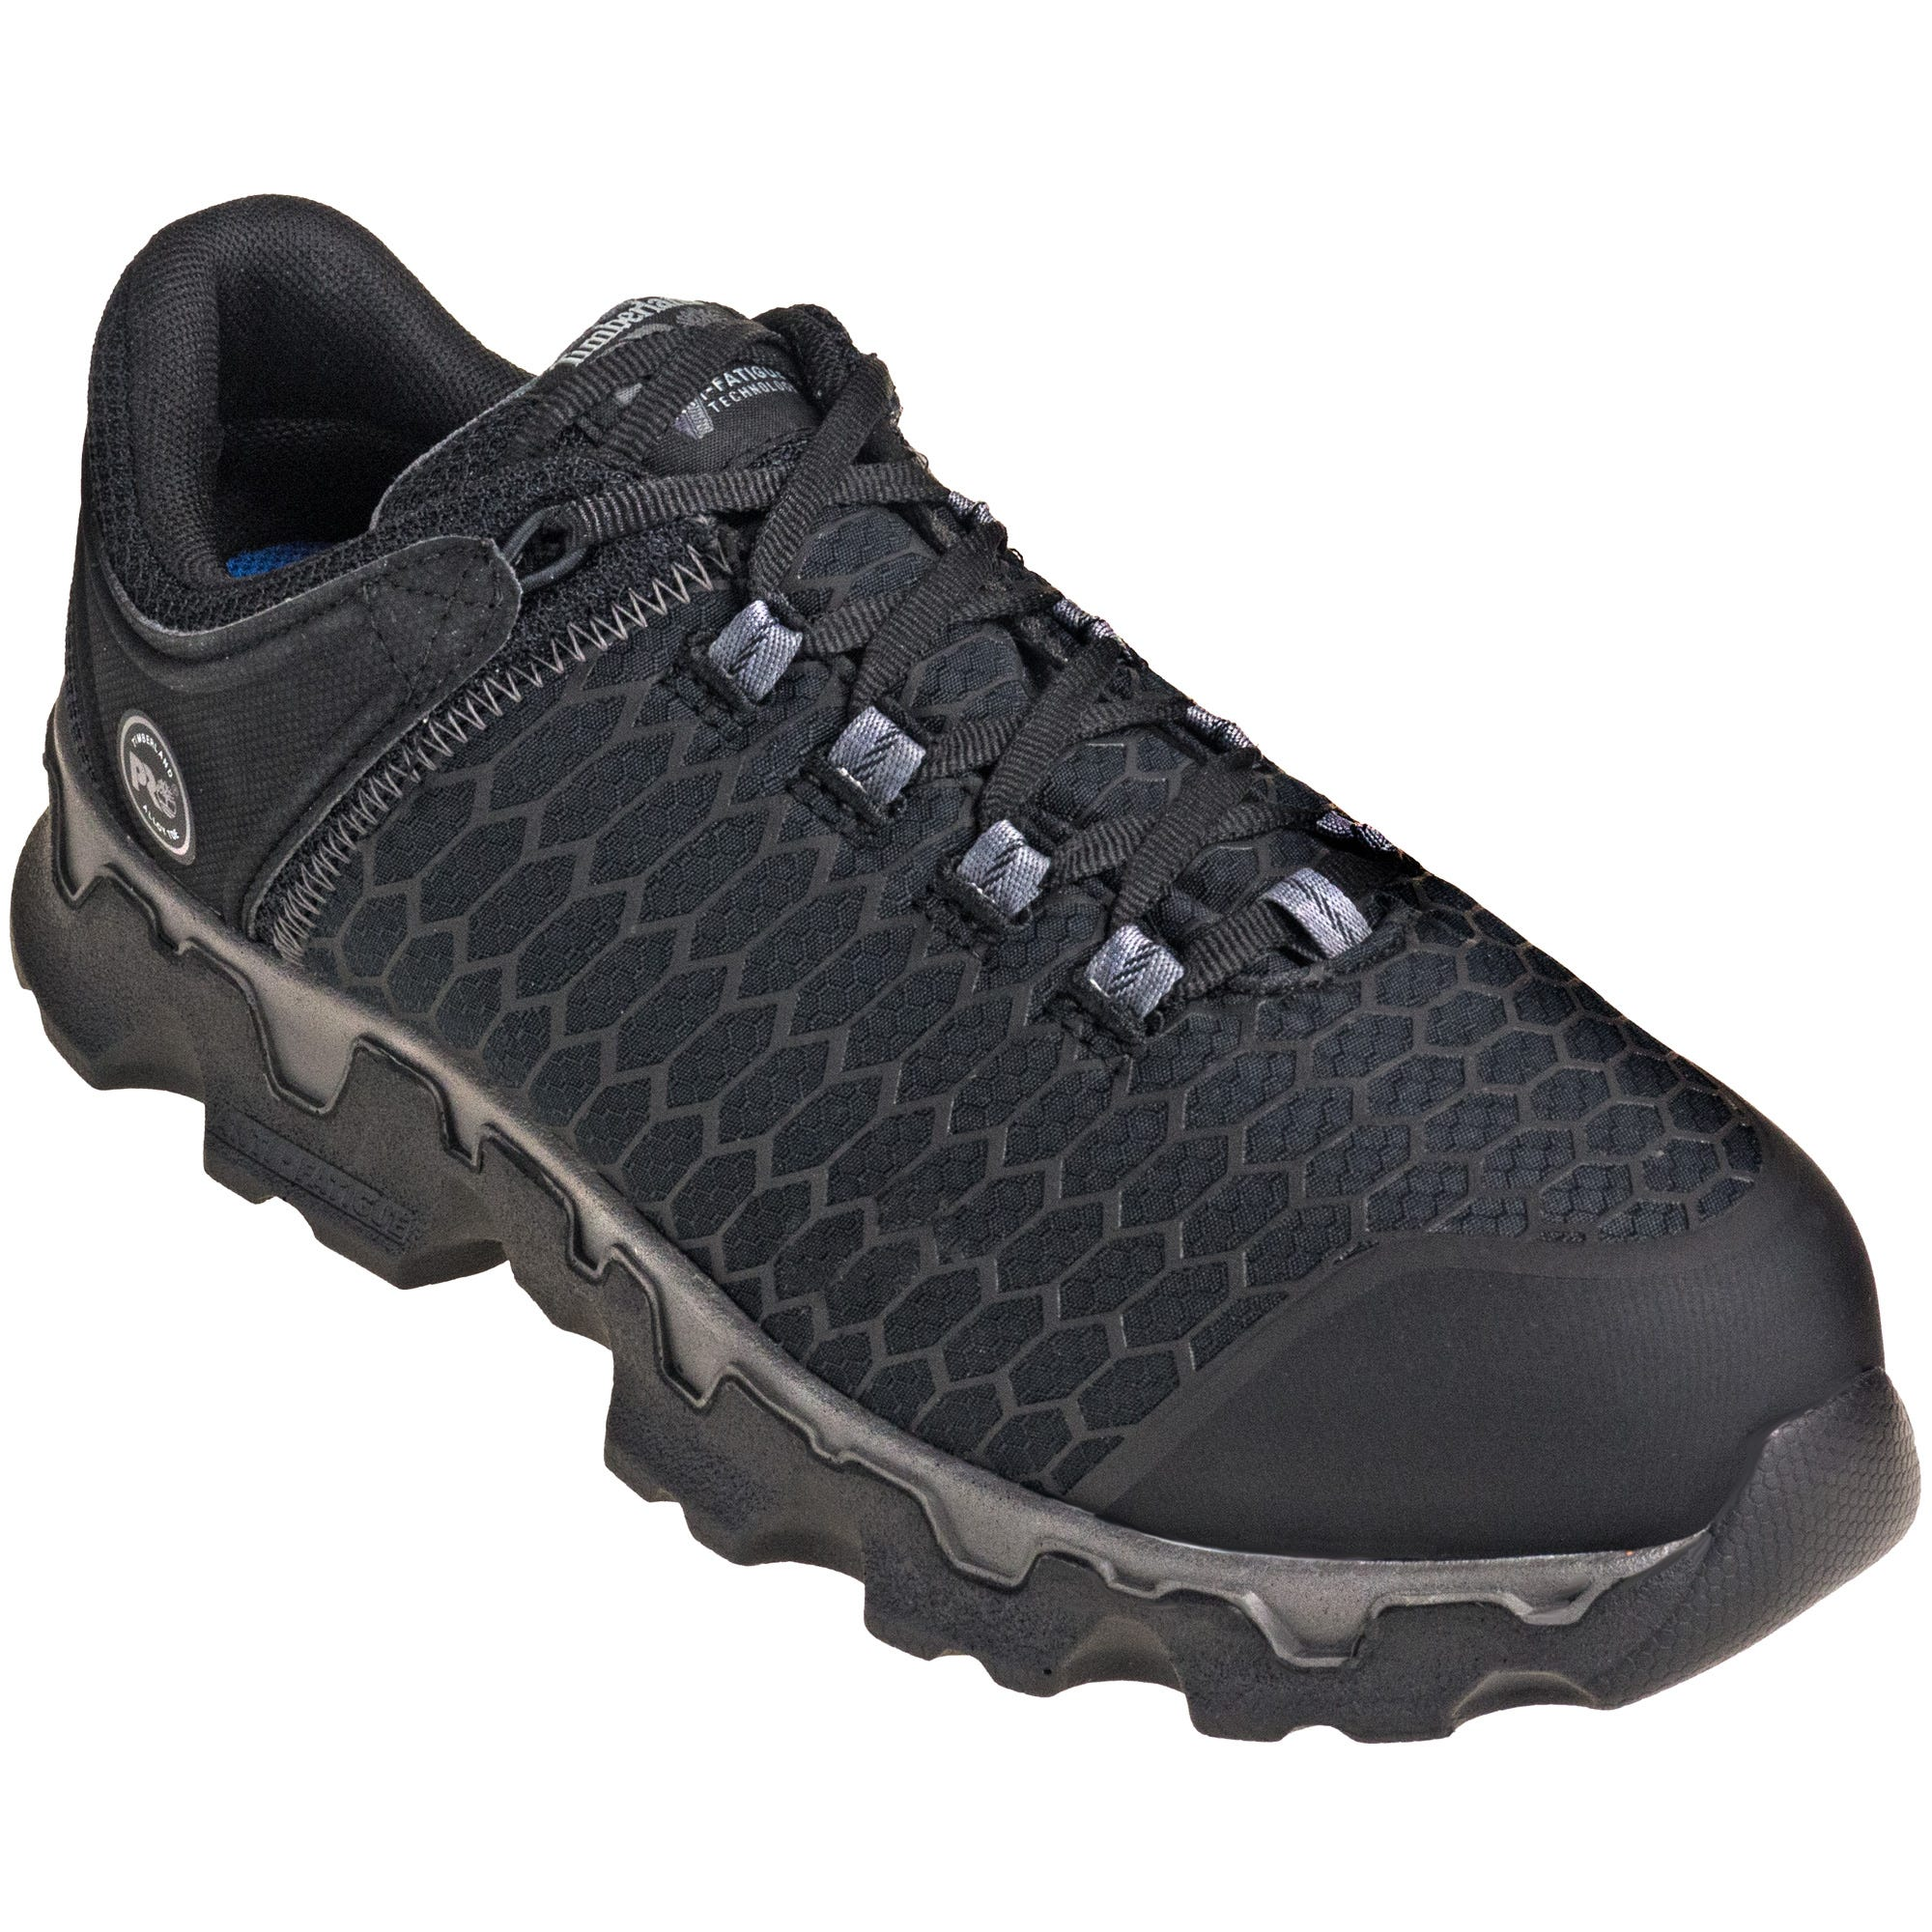 Timberland PRO TB0A1B6U 001 Alloy Toe ESD Powertrain Sport Black Athletic Work Shoes